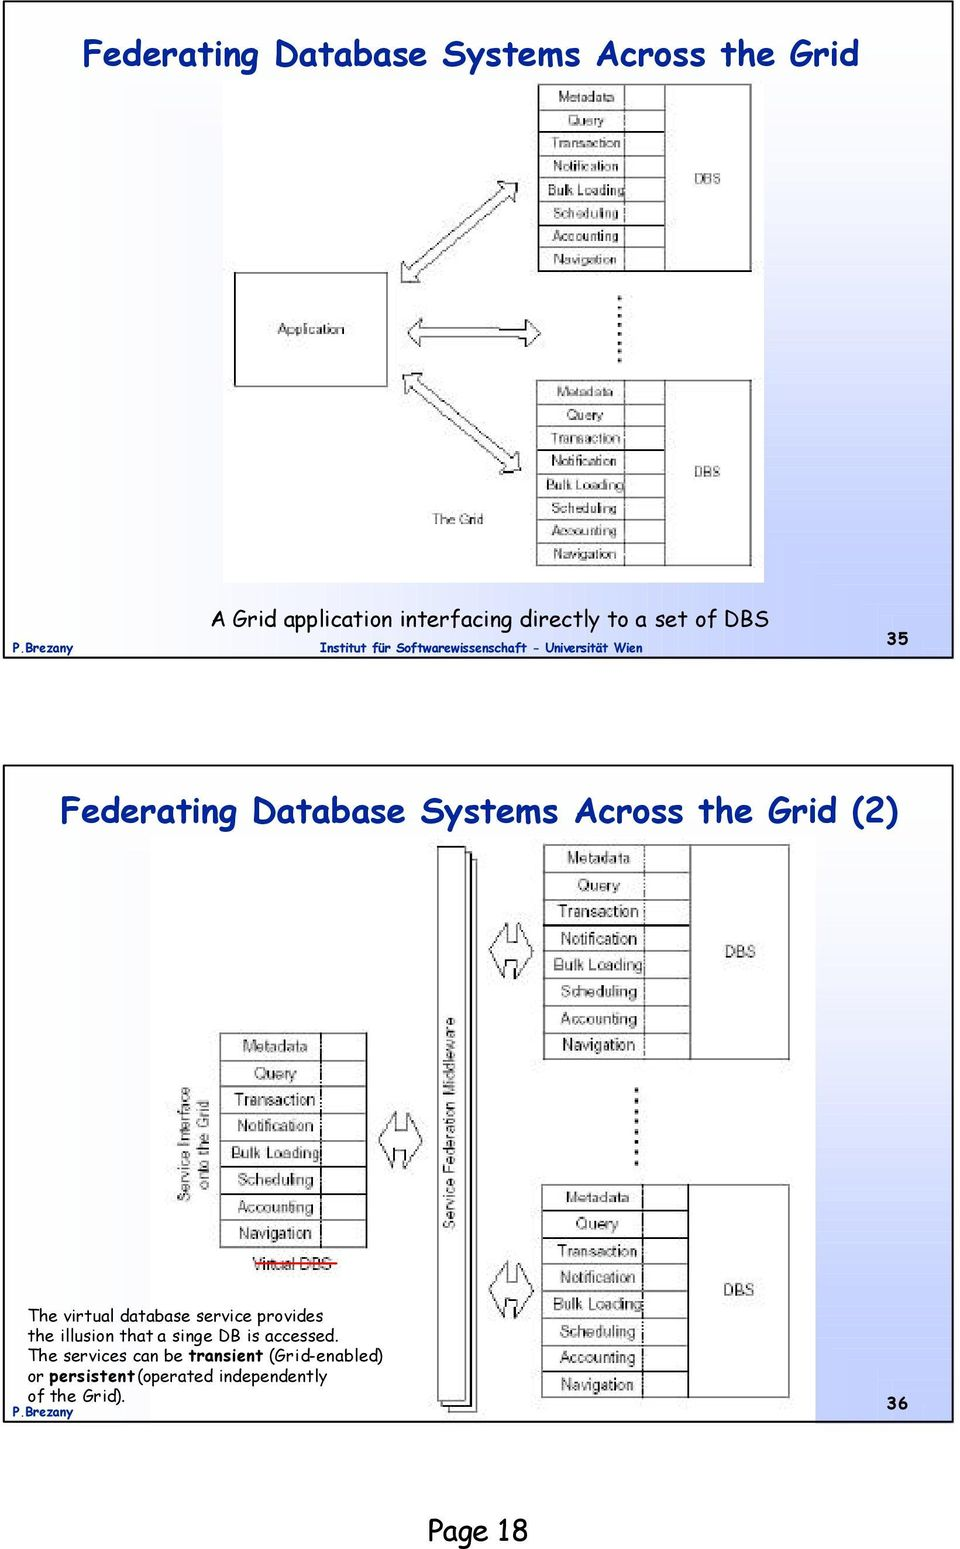 database service provides the illusion that a singe DB is accessed.